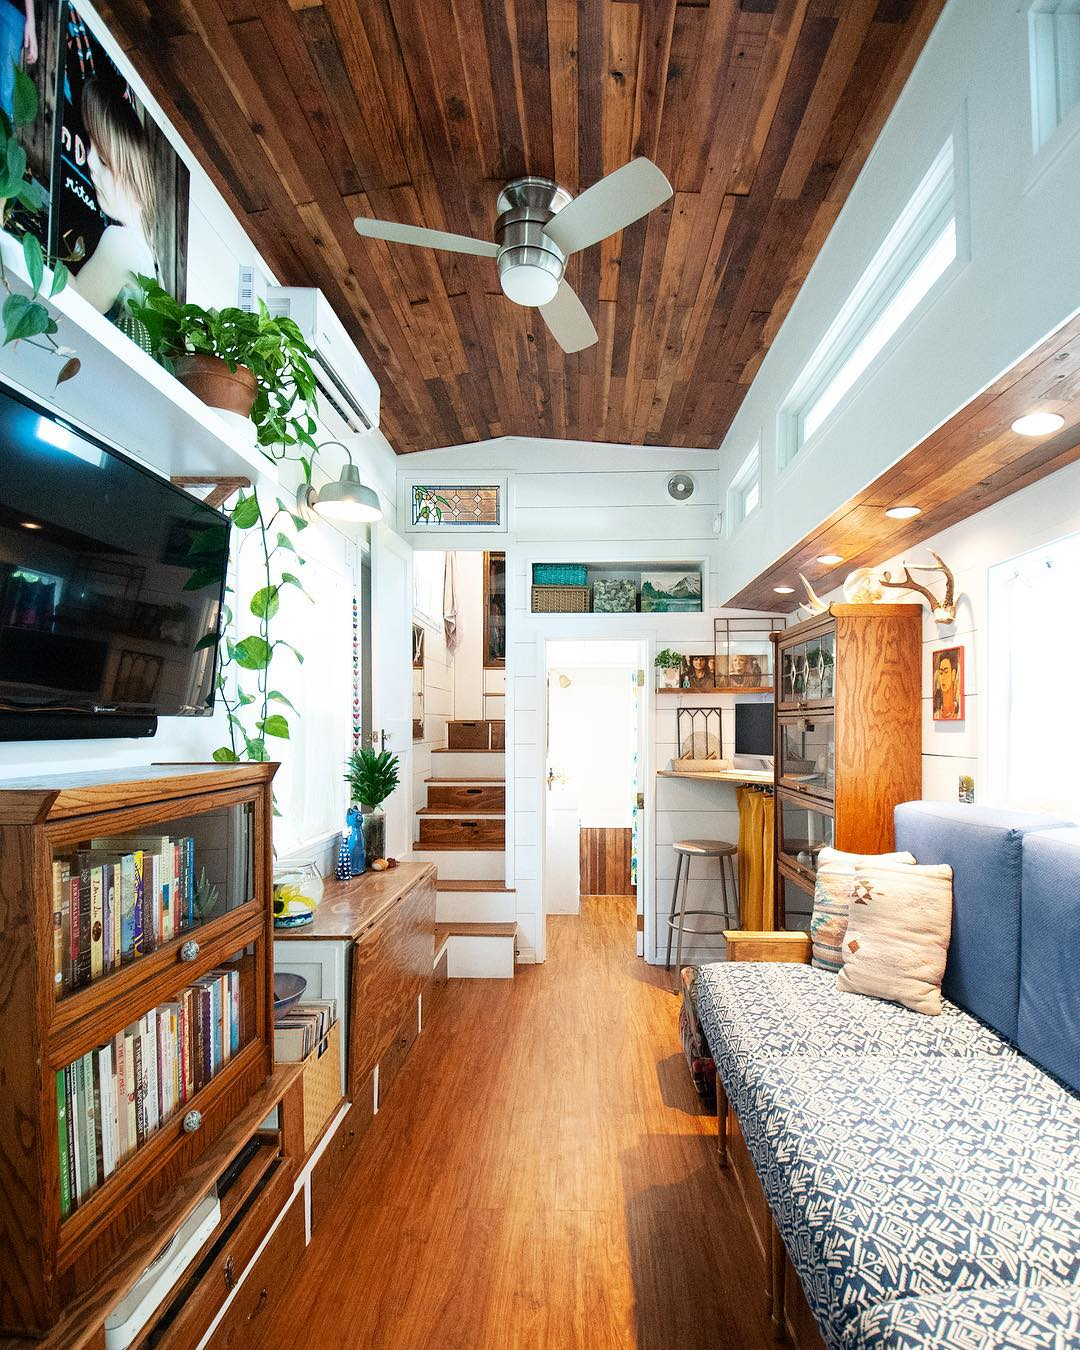 tiny house her tiny home 26 - Single mom built spectacular tiny home for herself and her daughter